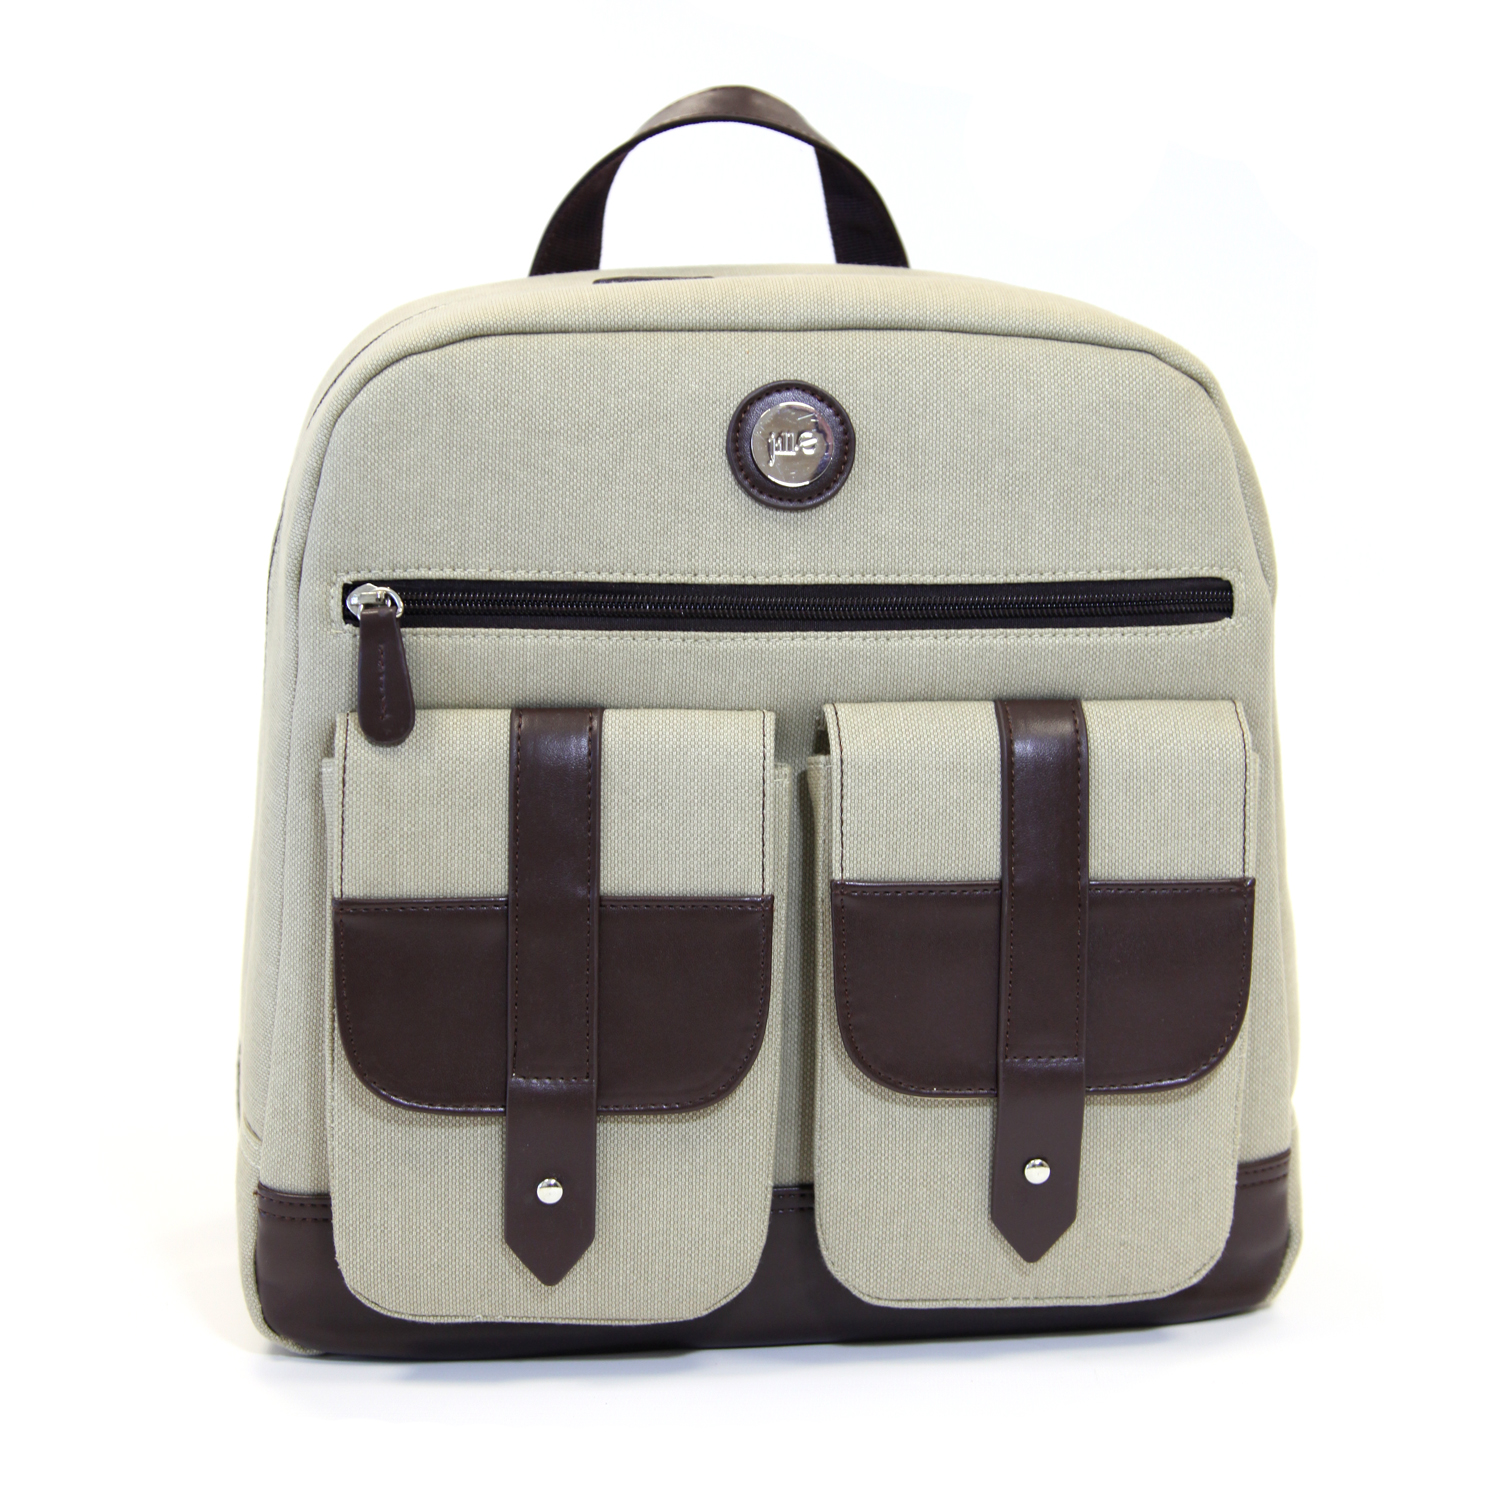 15 Laptop Backpack opkVaZo5